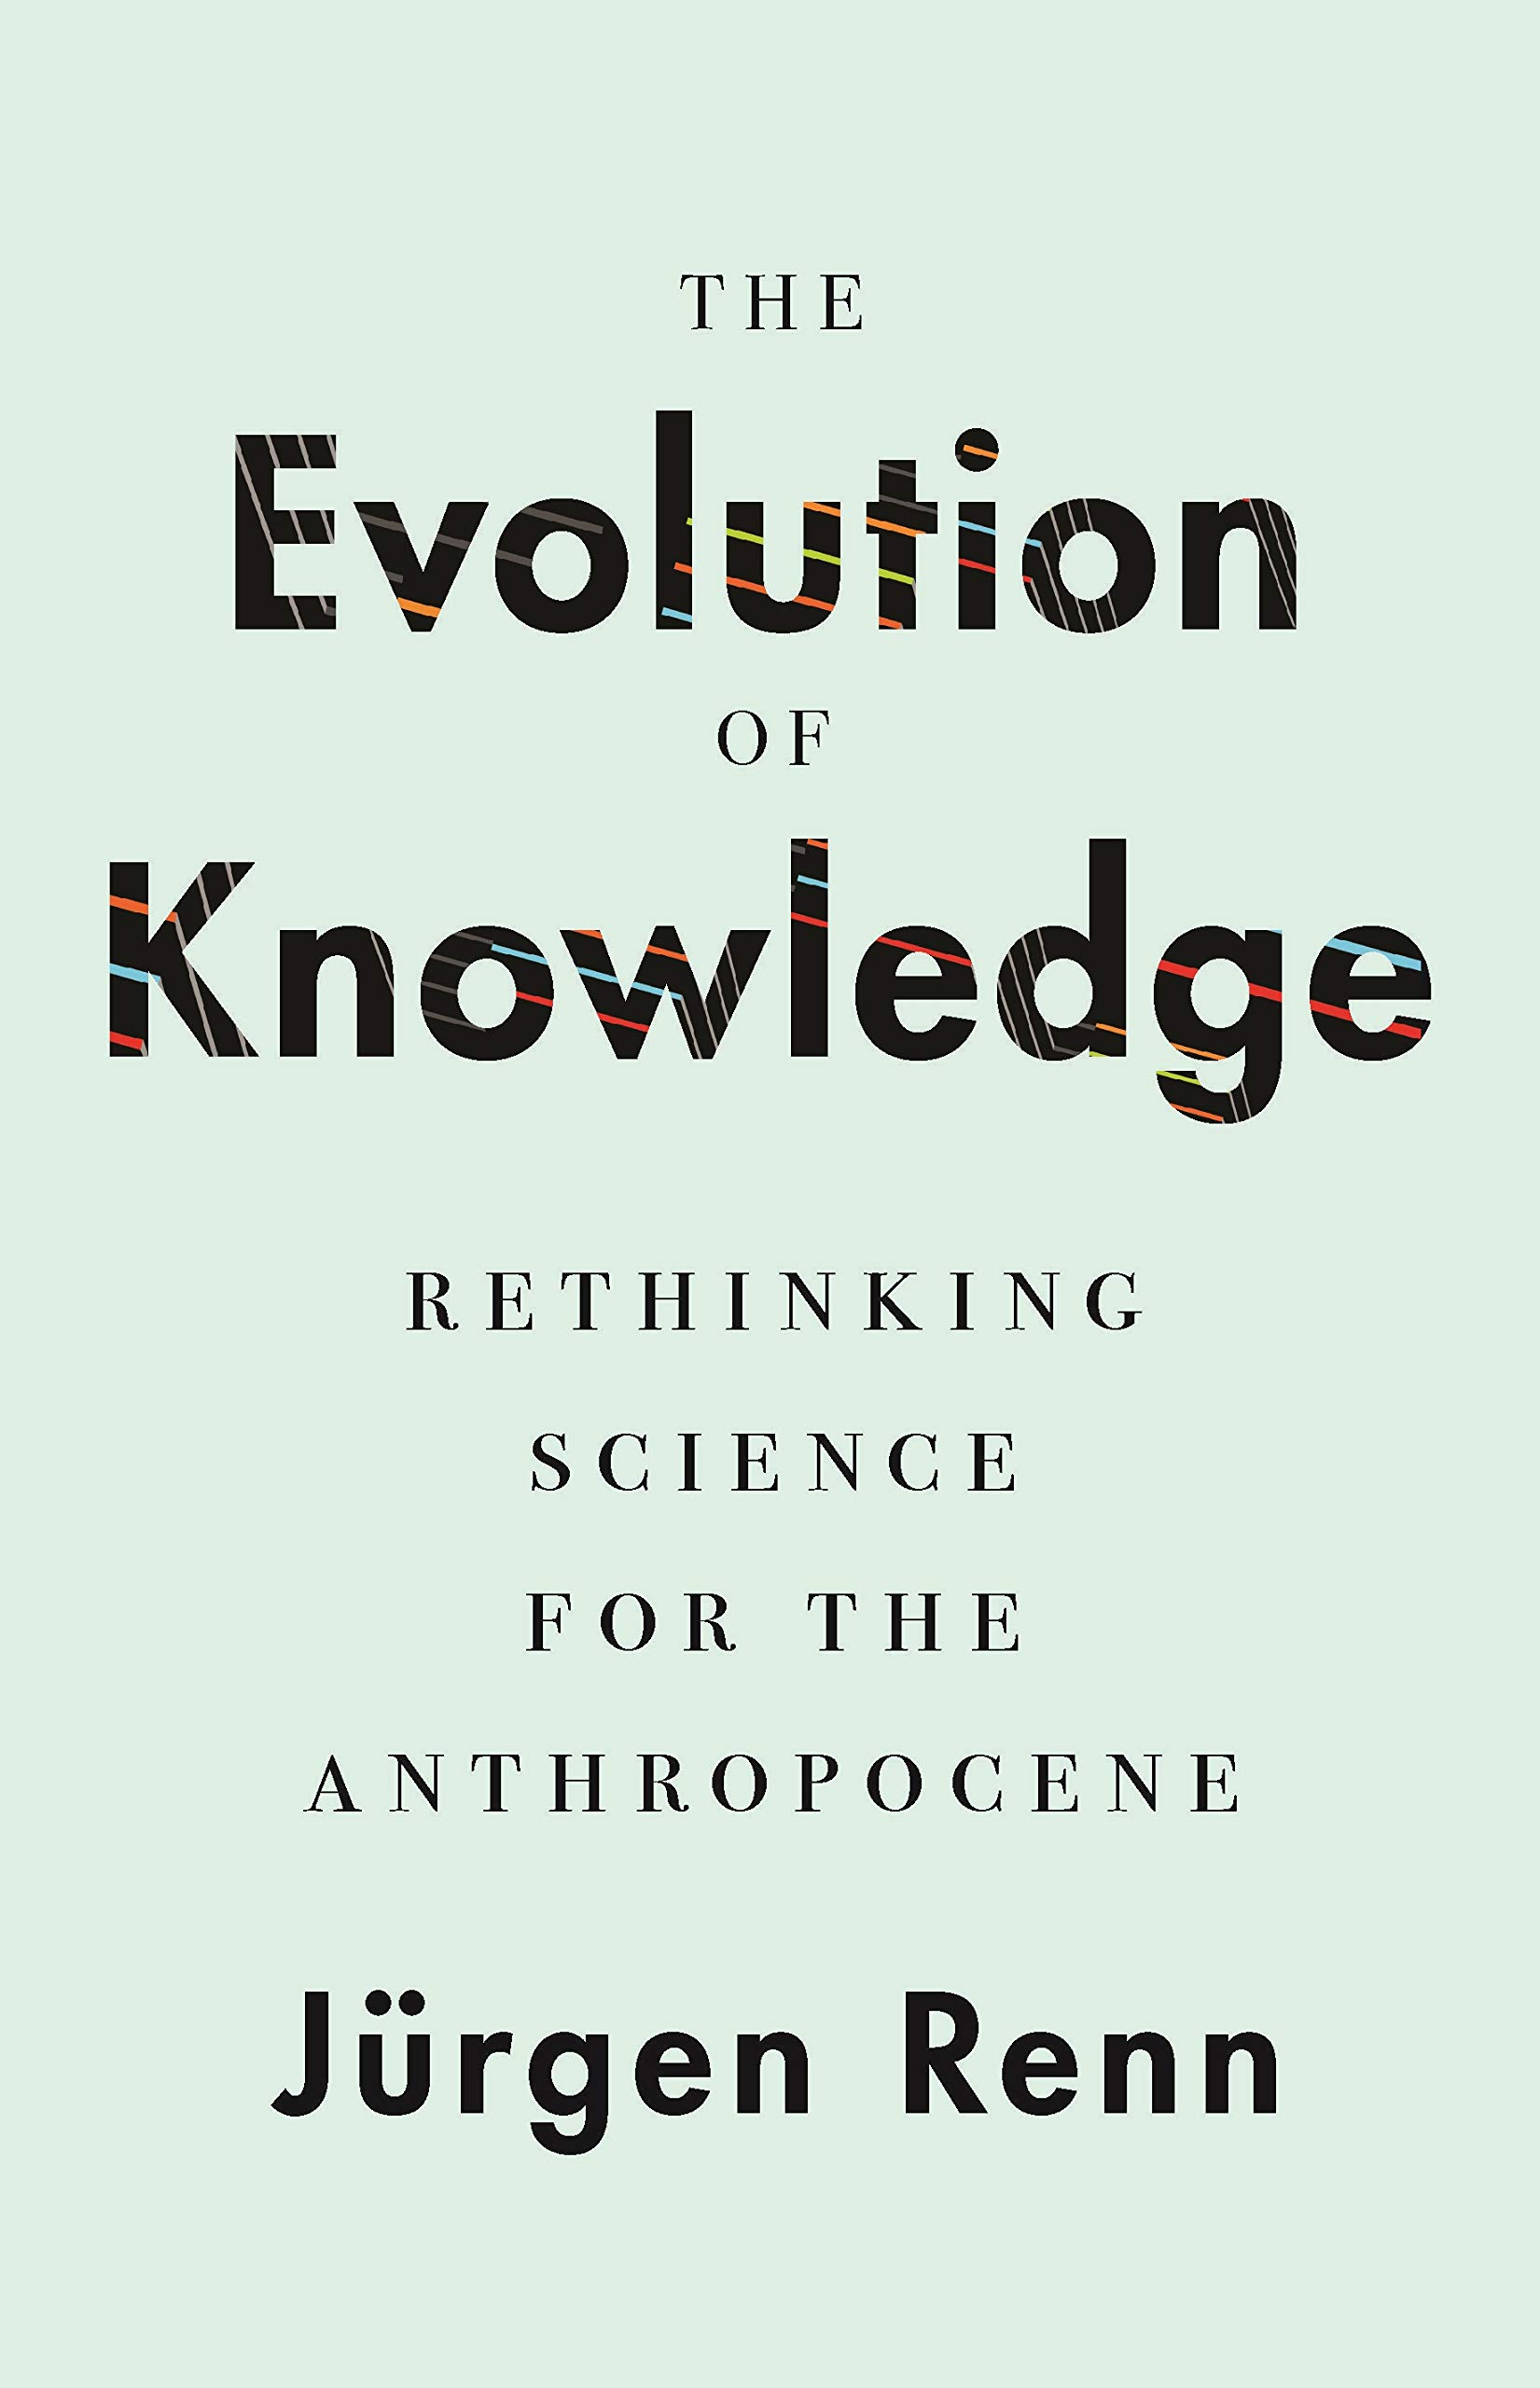 Download The Evolution Of Knowledge: Rethinking Science For The Anthropocene 